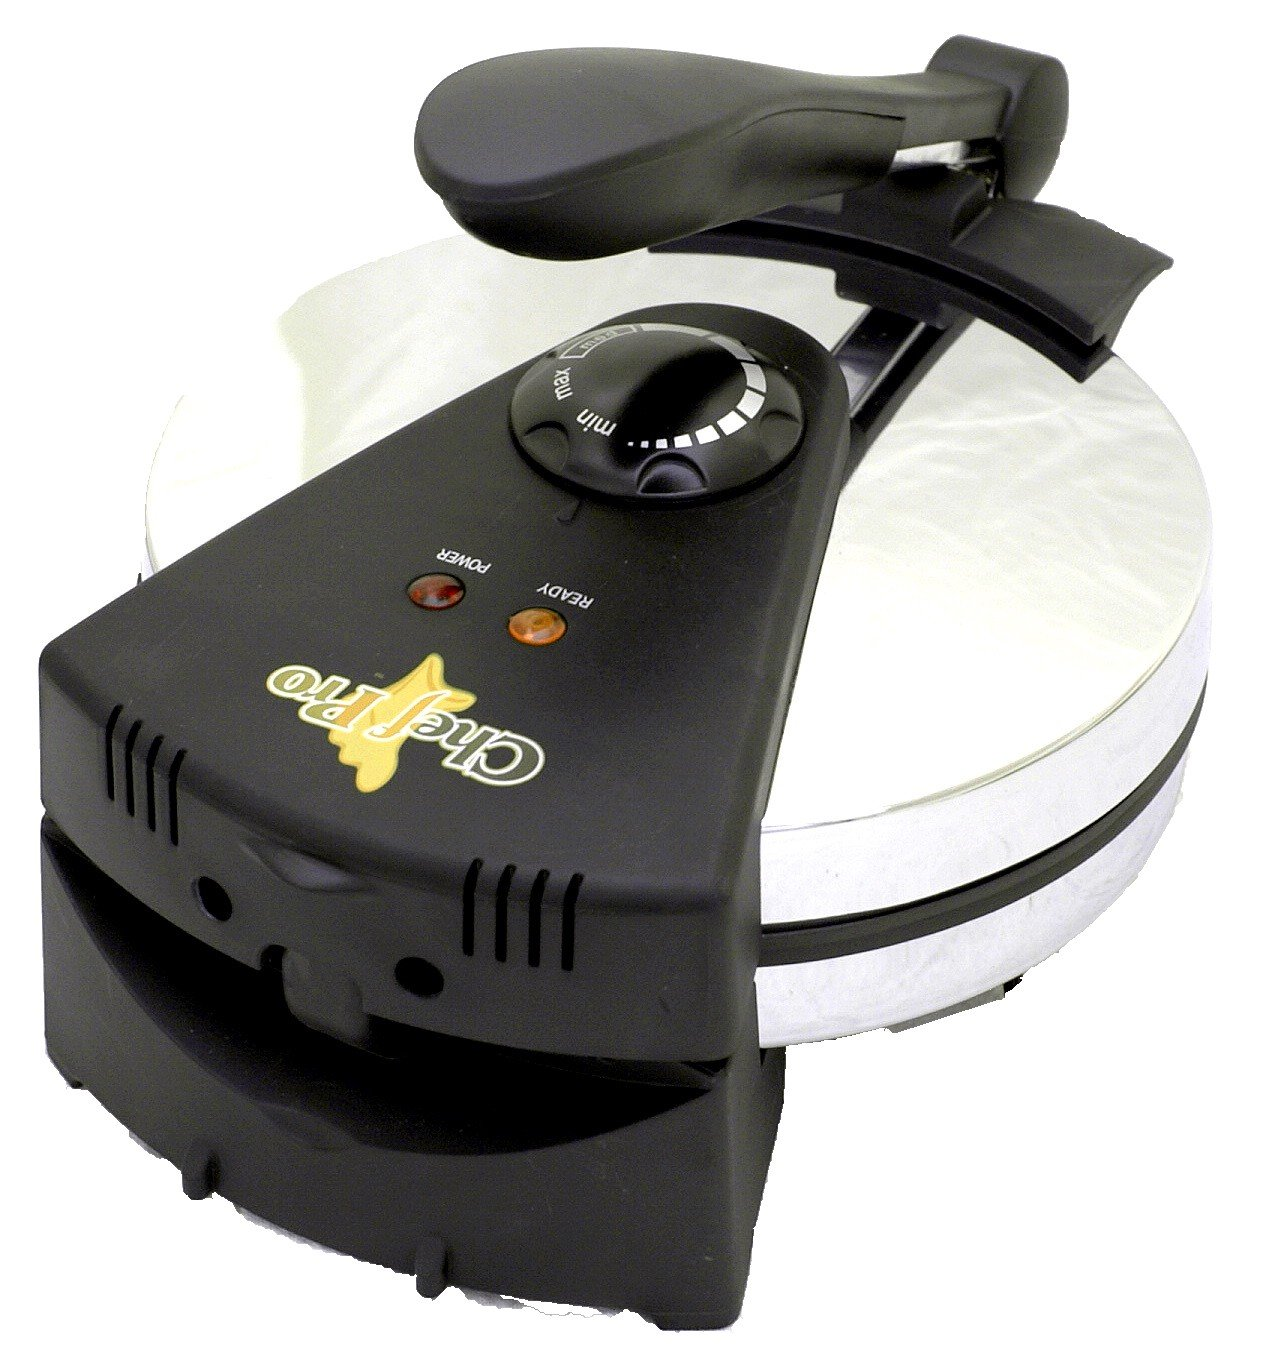 Chef Pro Flat Bread Maker